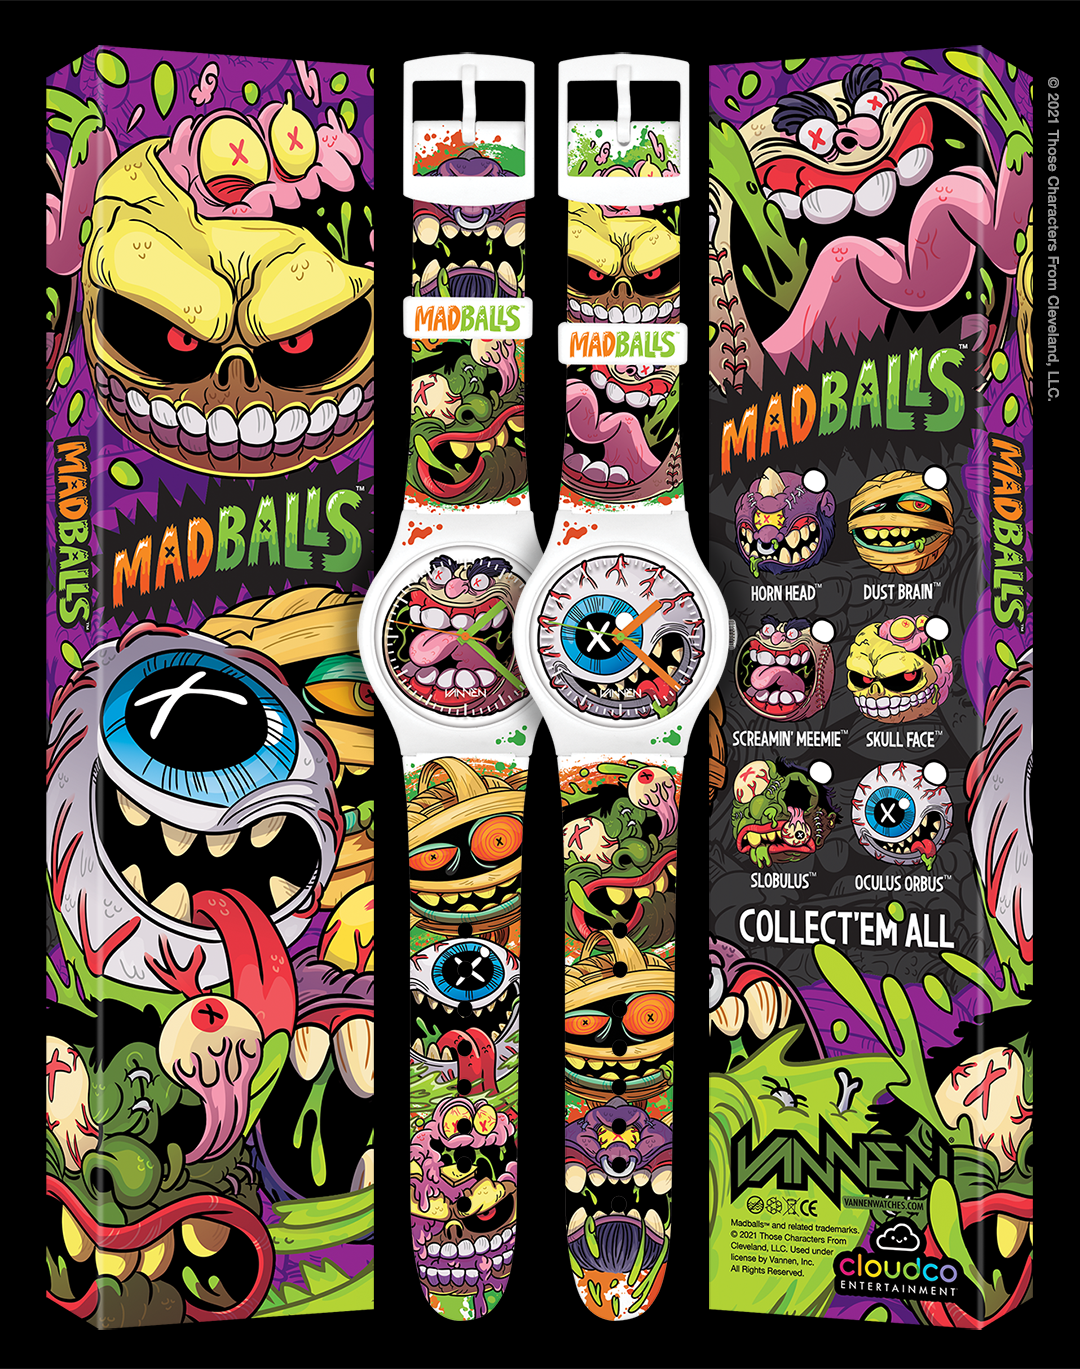 Limited edition Madballs watches from Vannen